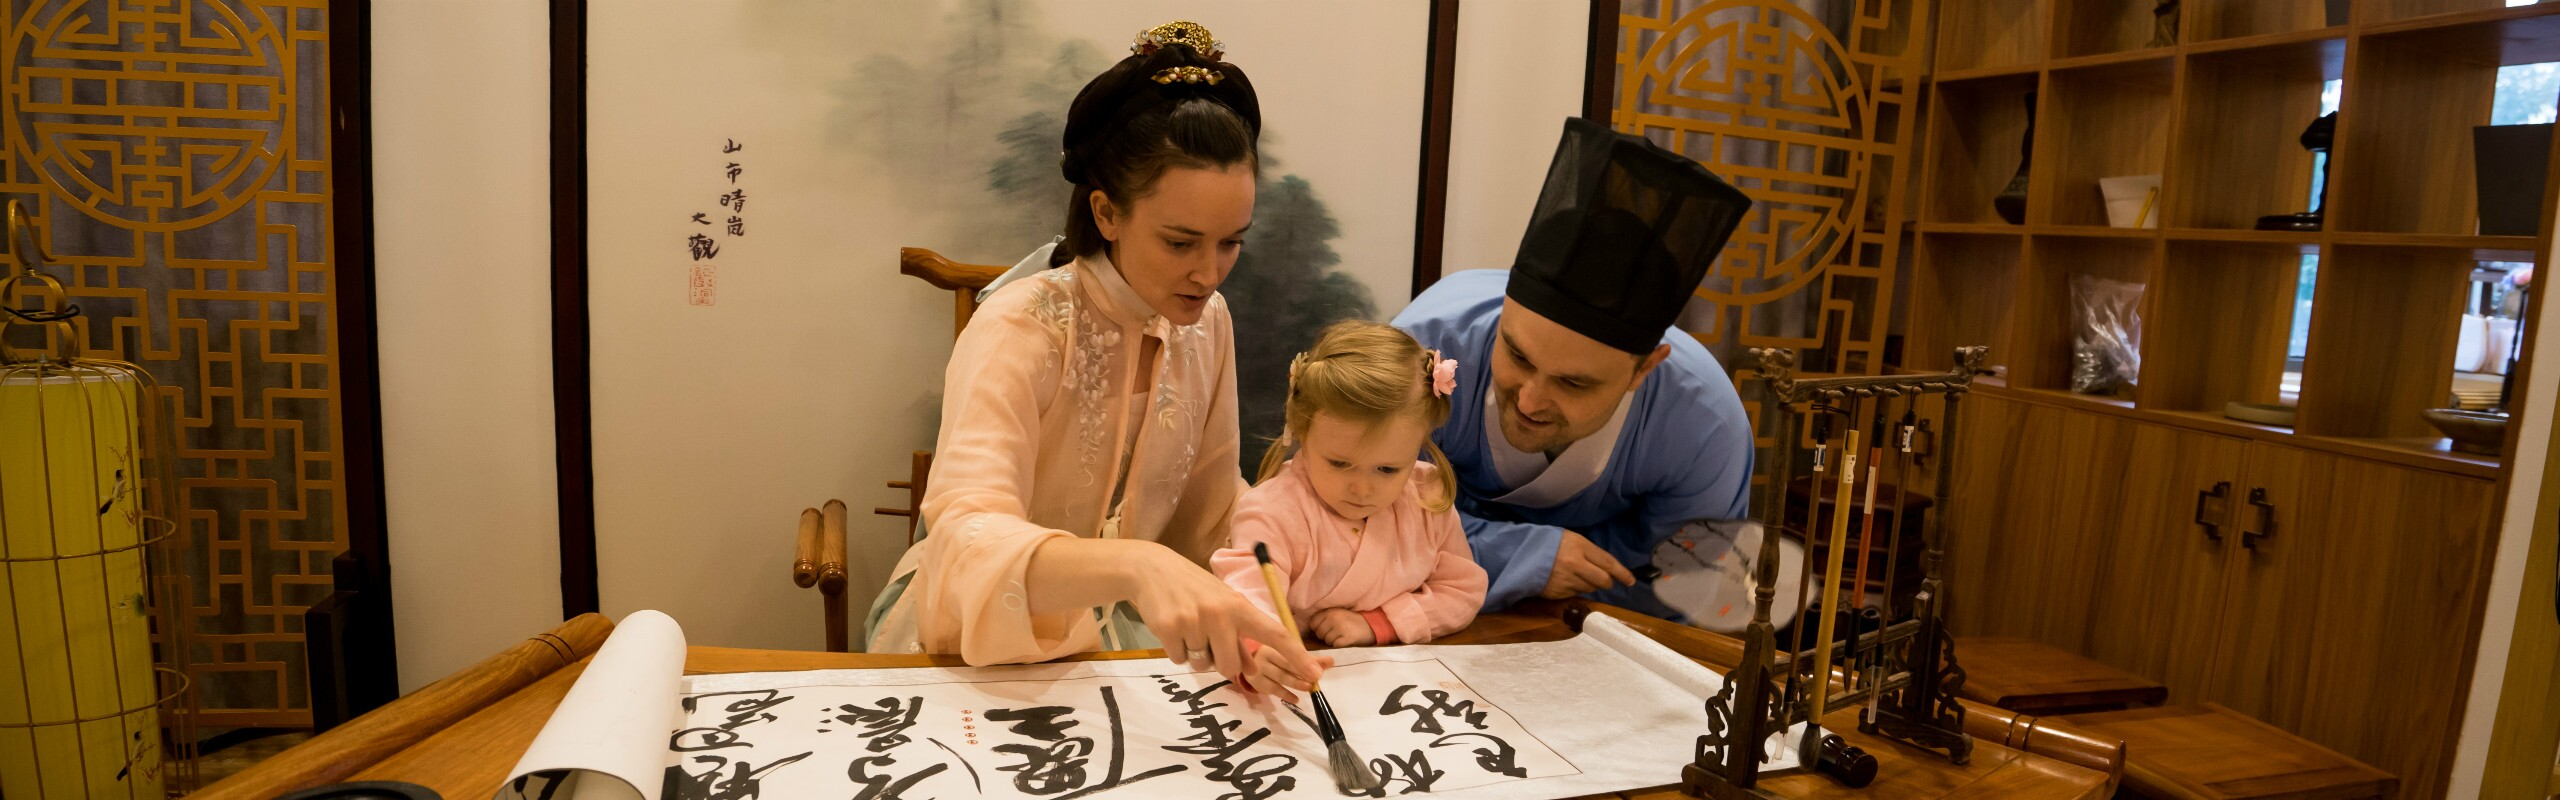 Spotlight Experiences for China Family Tours